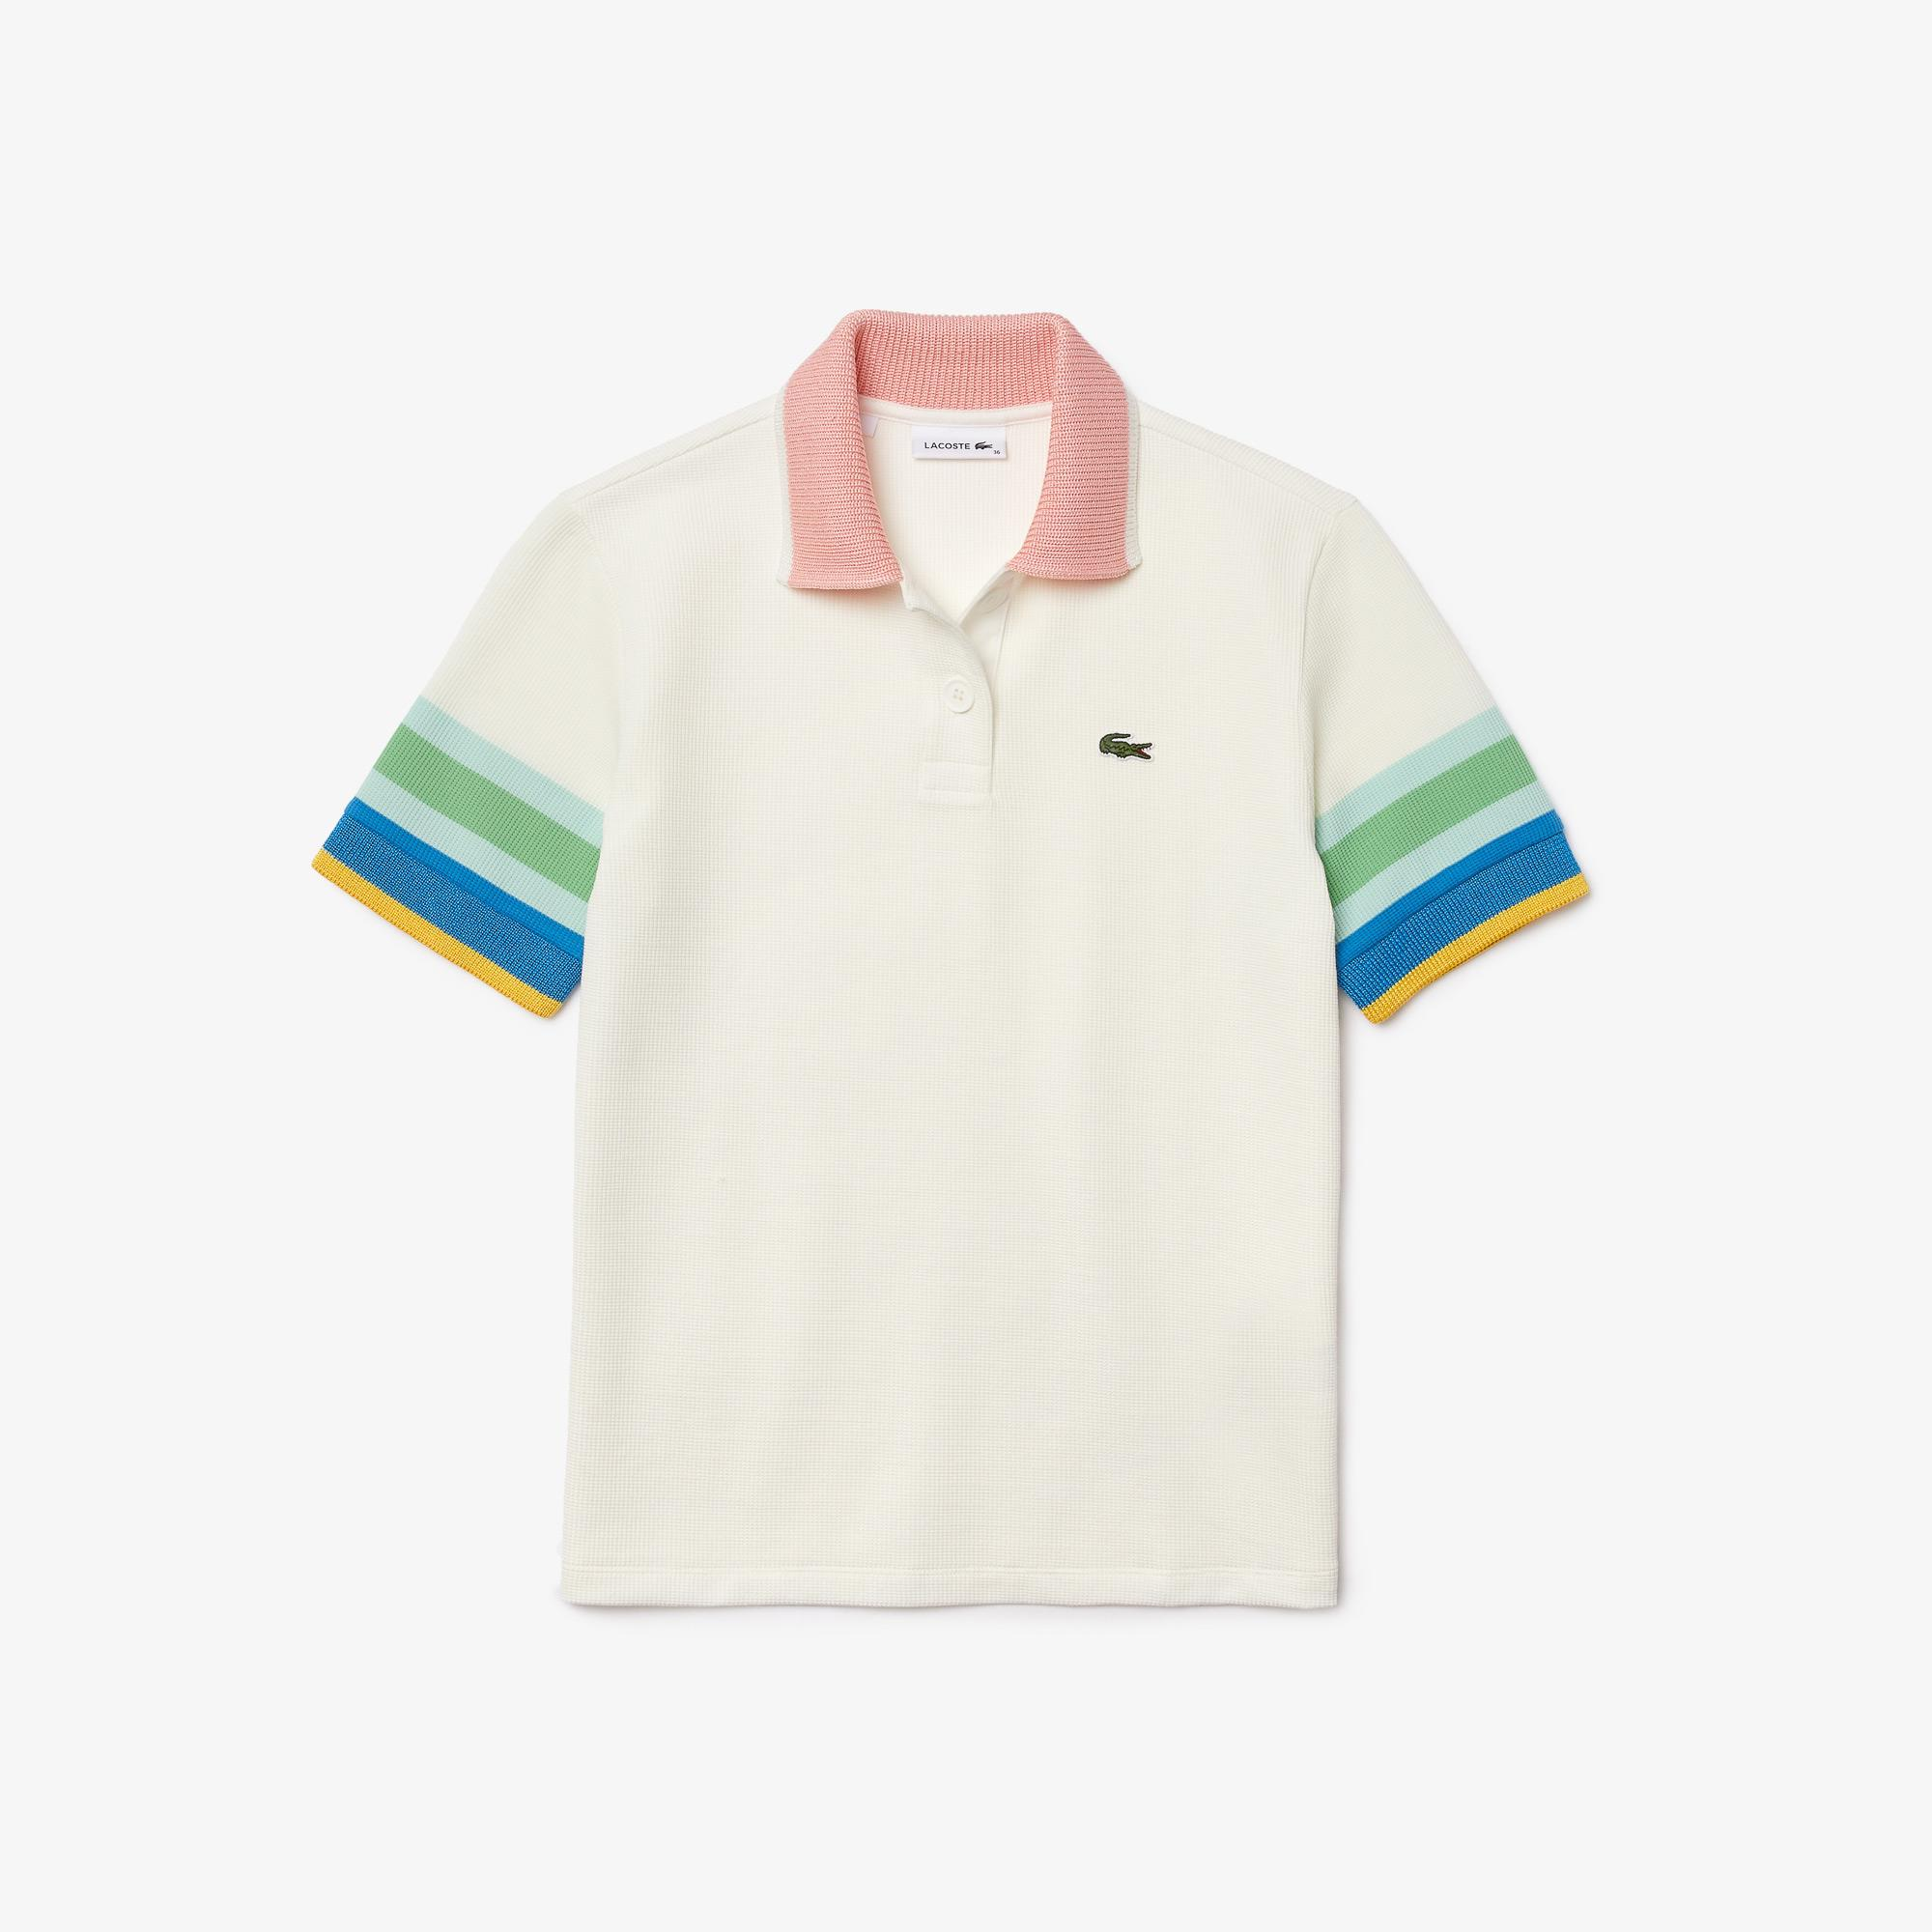 Lacoste Women's Striped Sleeve Textured Cotton Polo Shirt